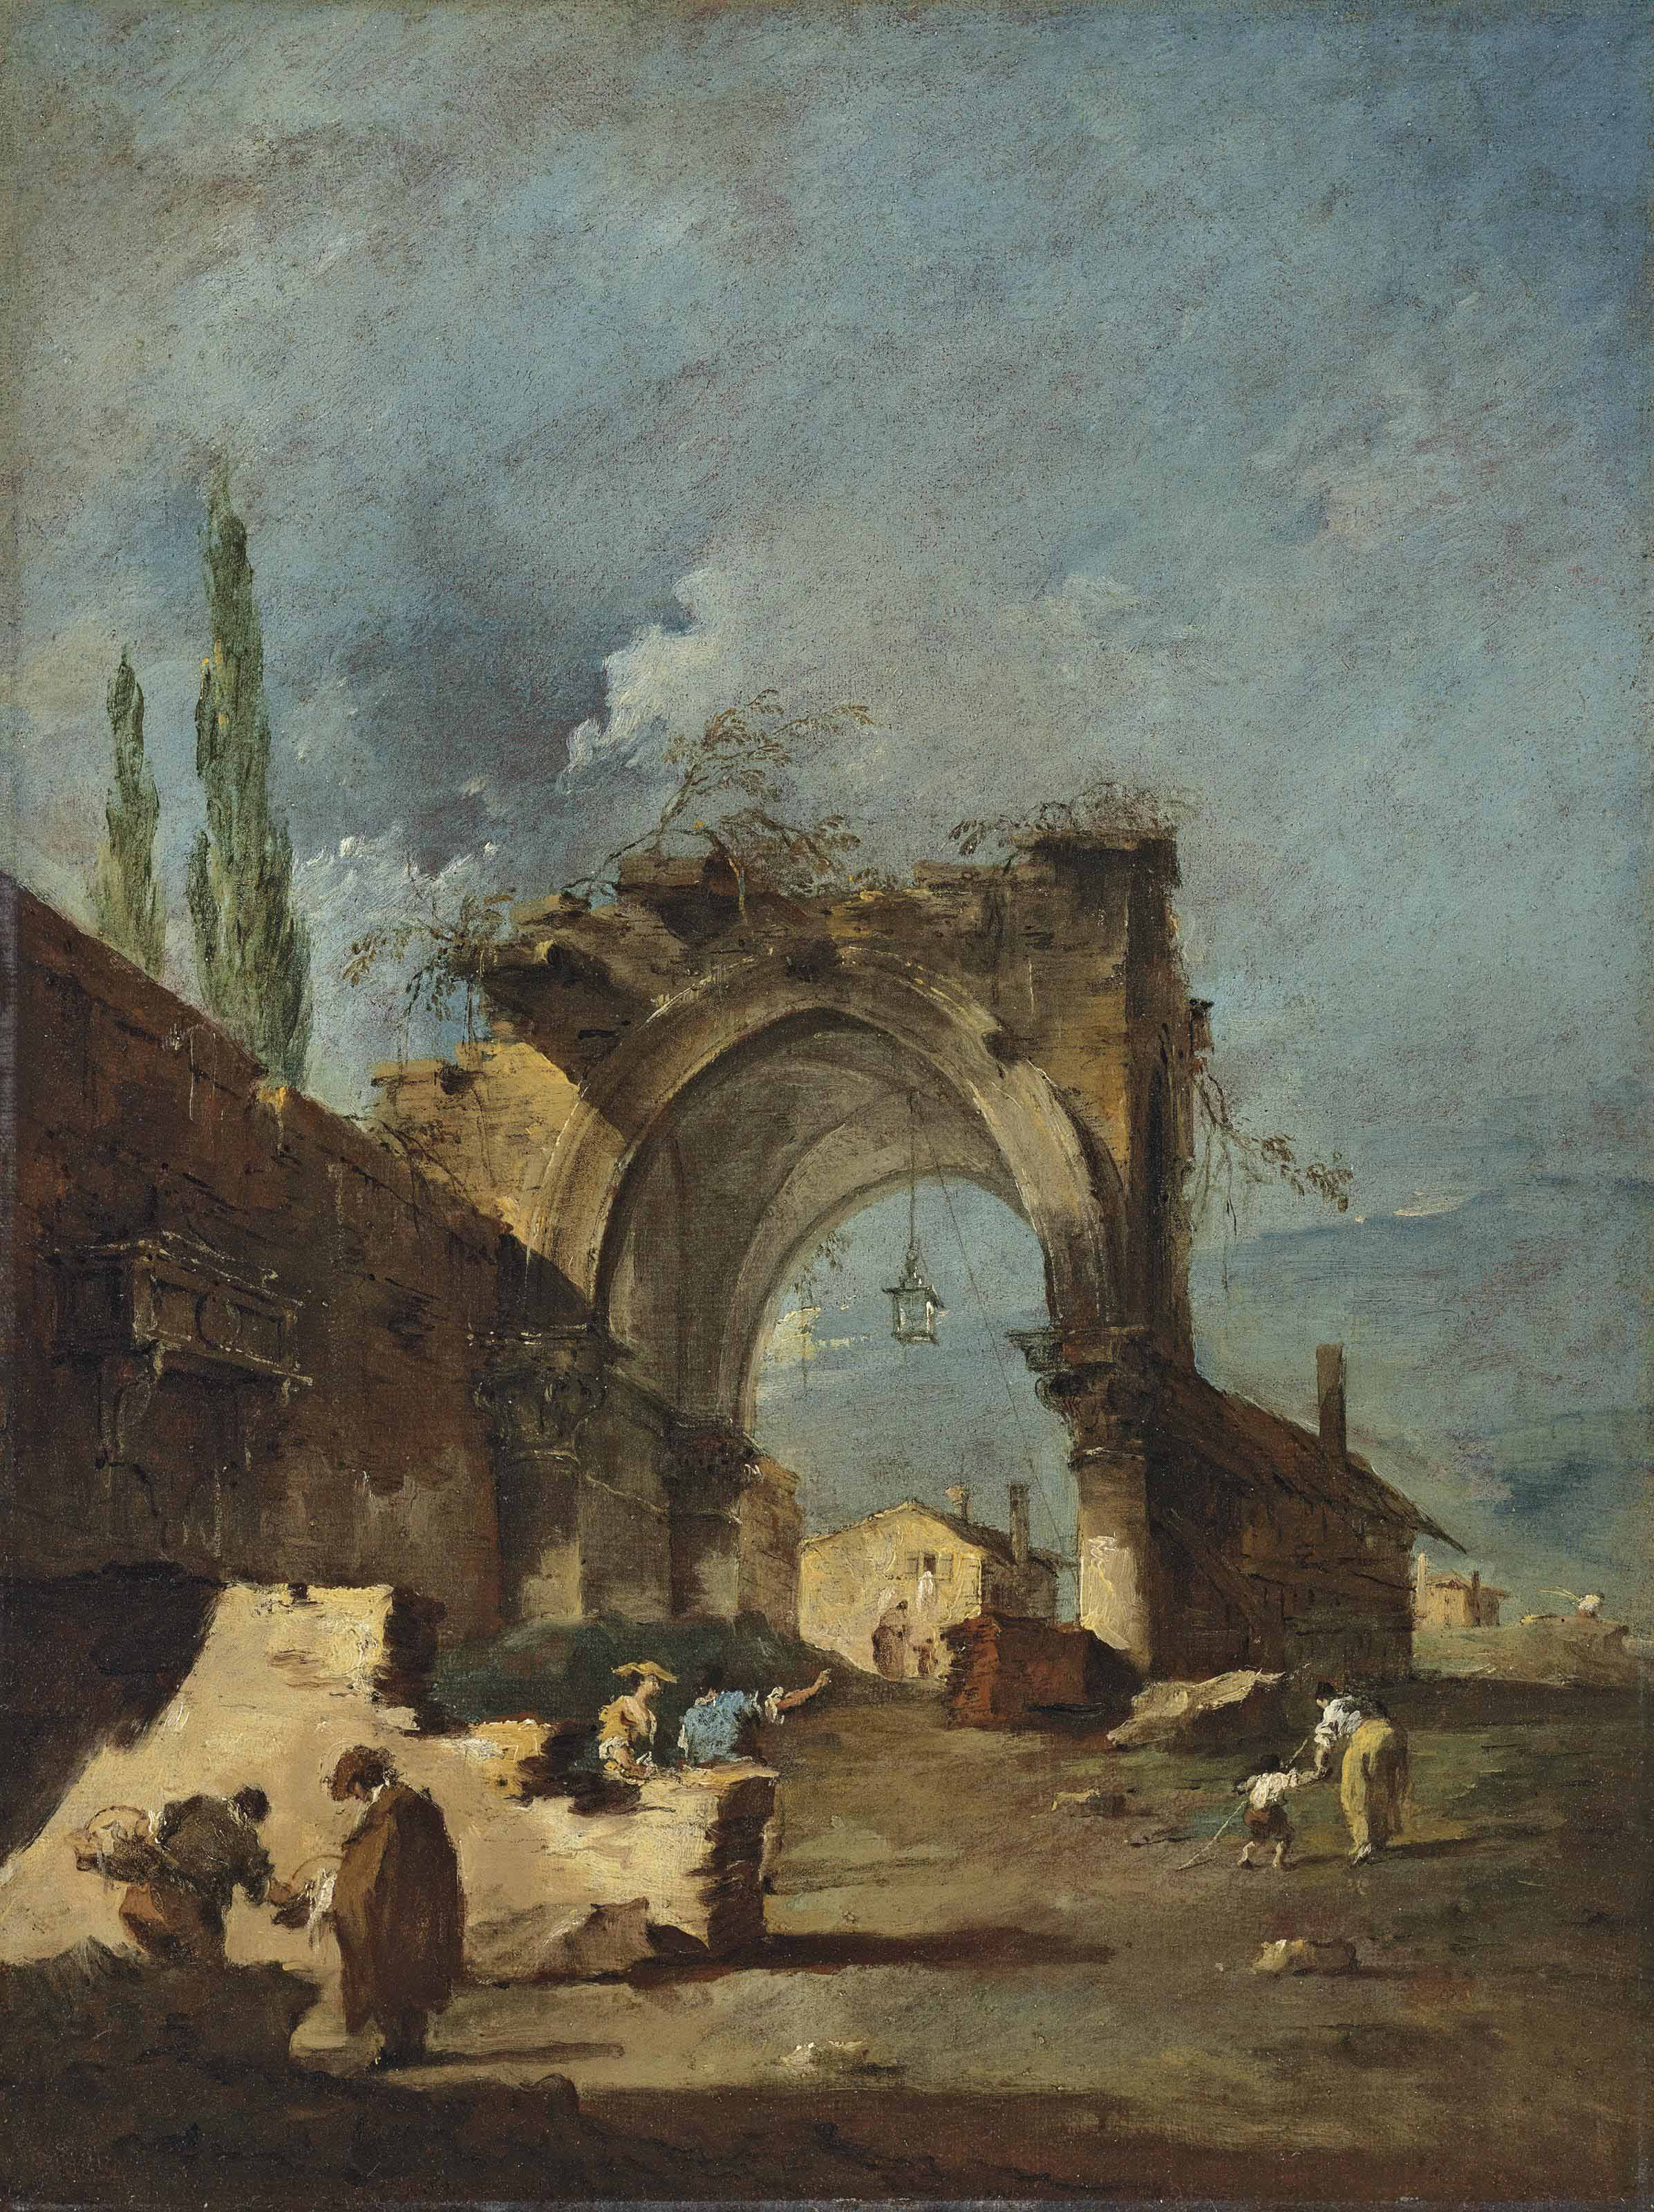 A capriccio of ruined buildings, with cypresses and figures by an arch